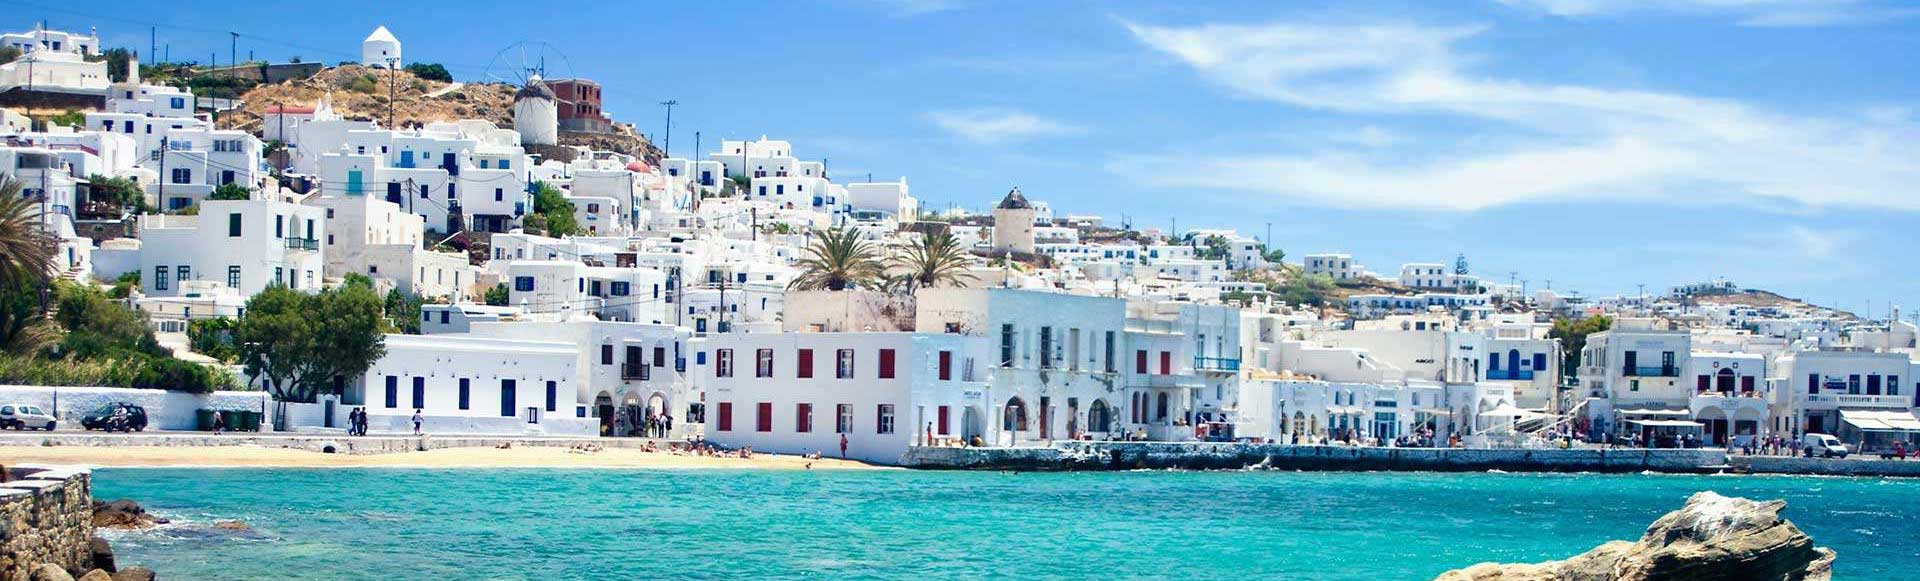 Yacht charter Cyclades Islands, Greece